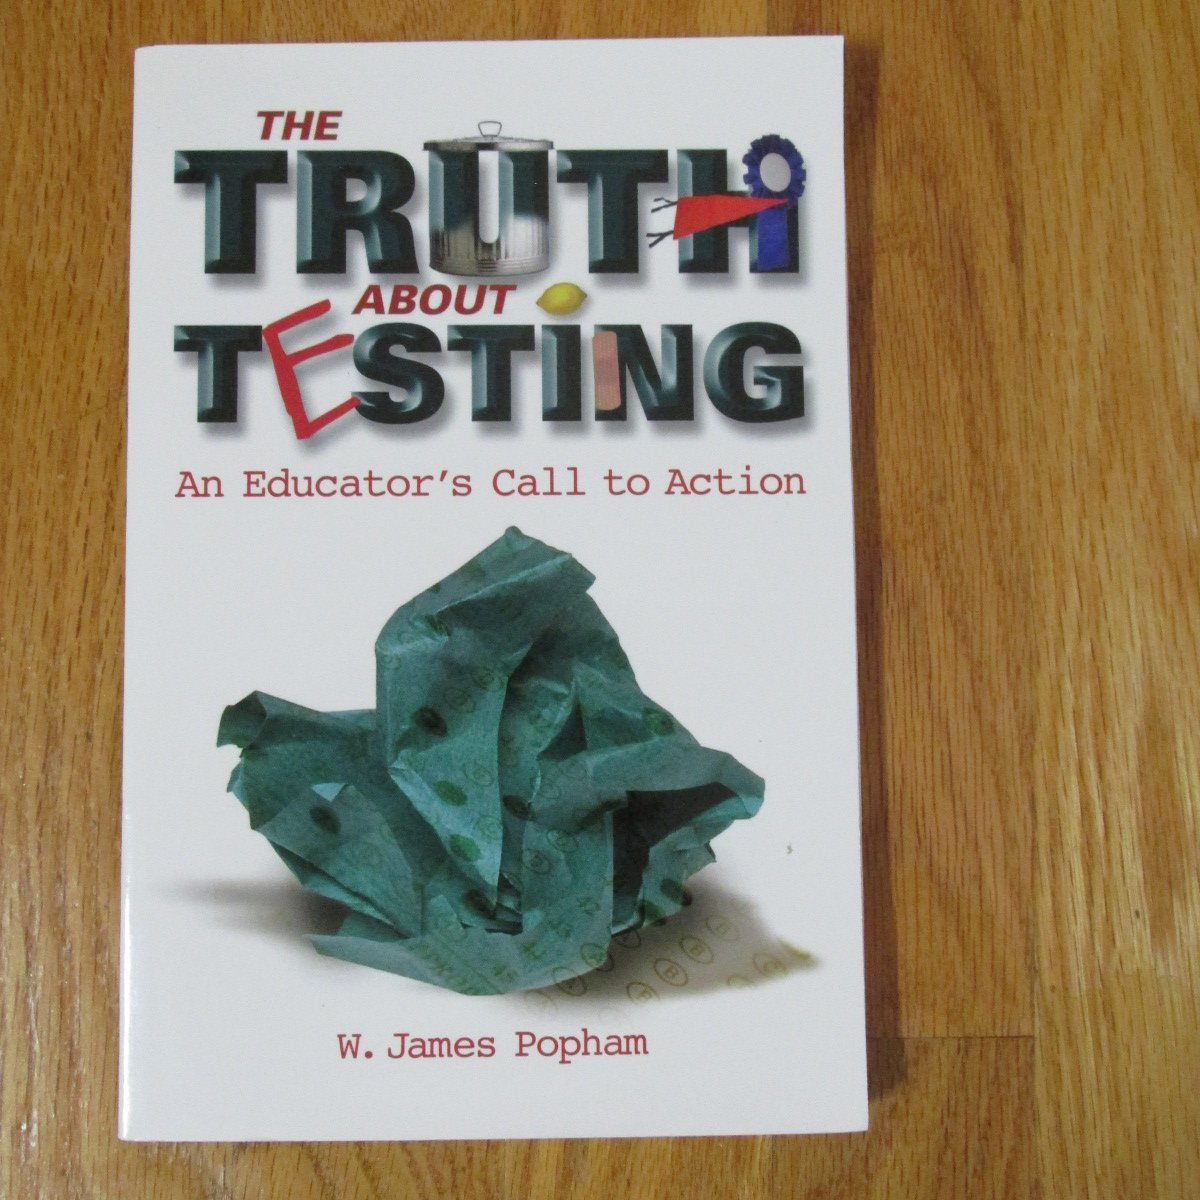 THE TRUTH ABOUT TESTING BOOK W. JAMES POPHAM ASCD 2001